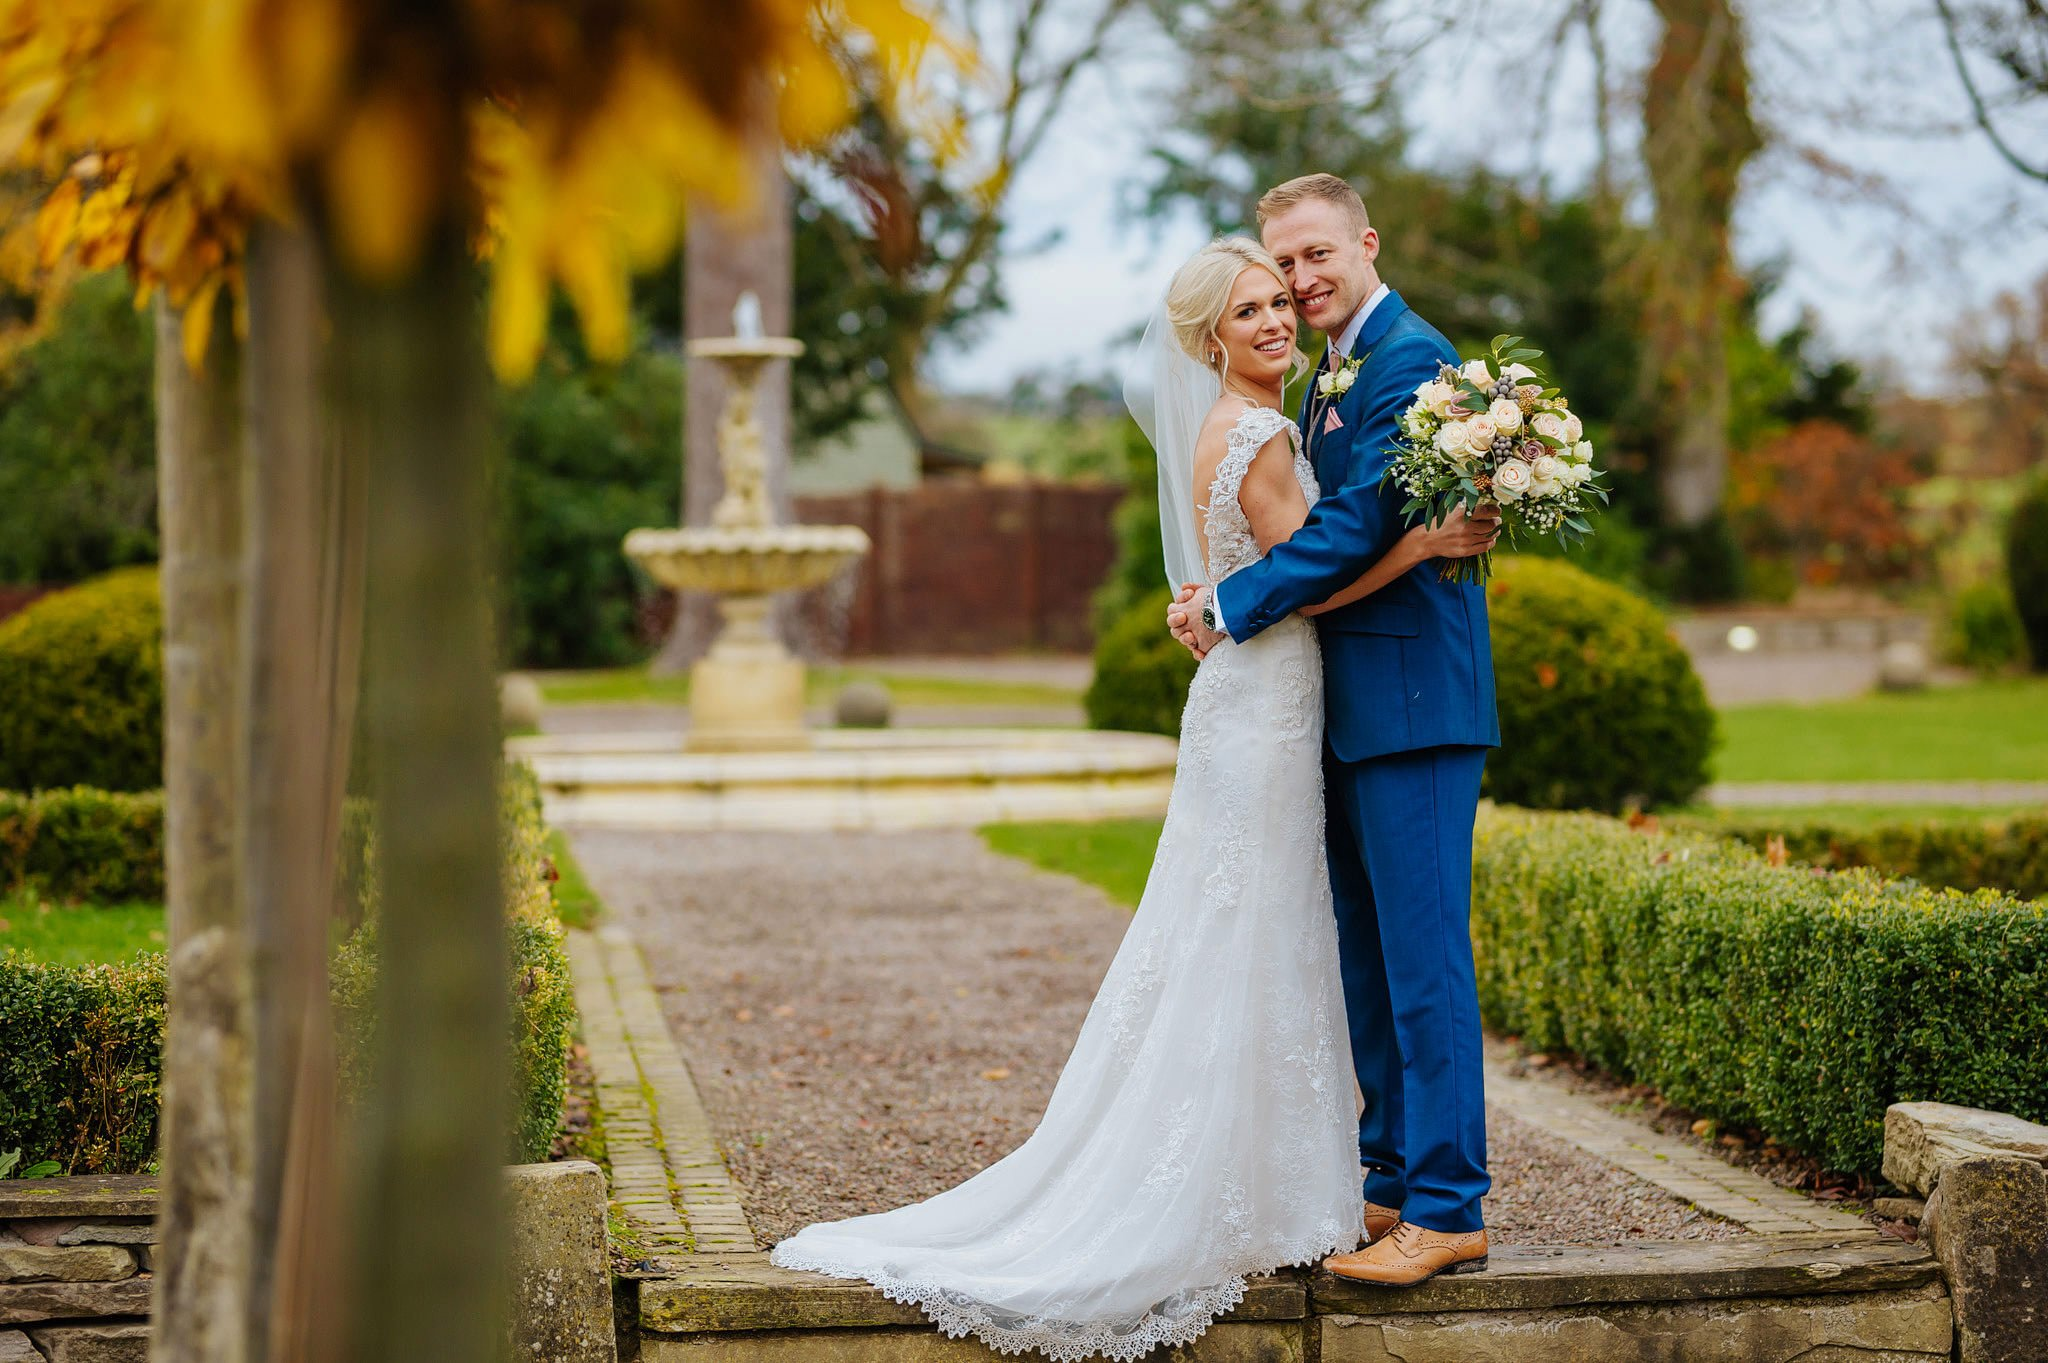 sigma 85mm art review wedding photography 124 - Sigma 85mm F1.4 ART review vs Wedding Photography